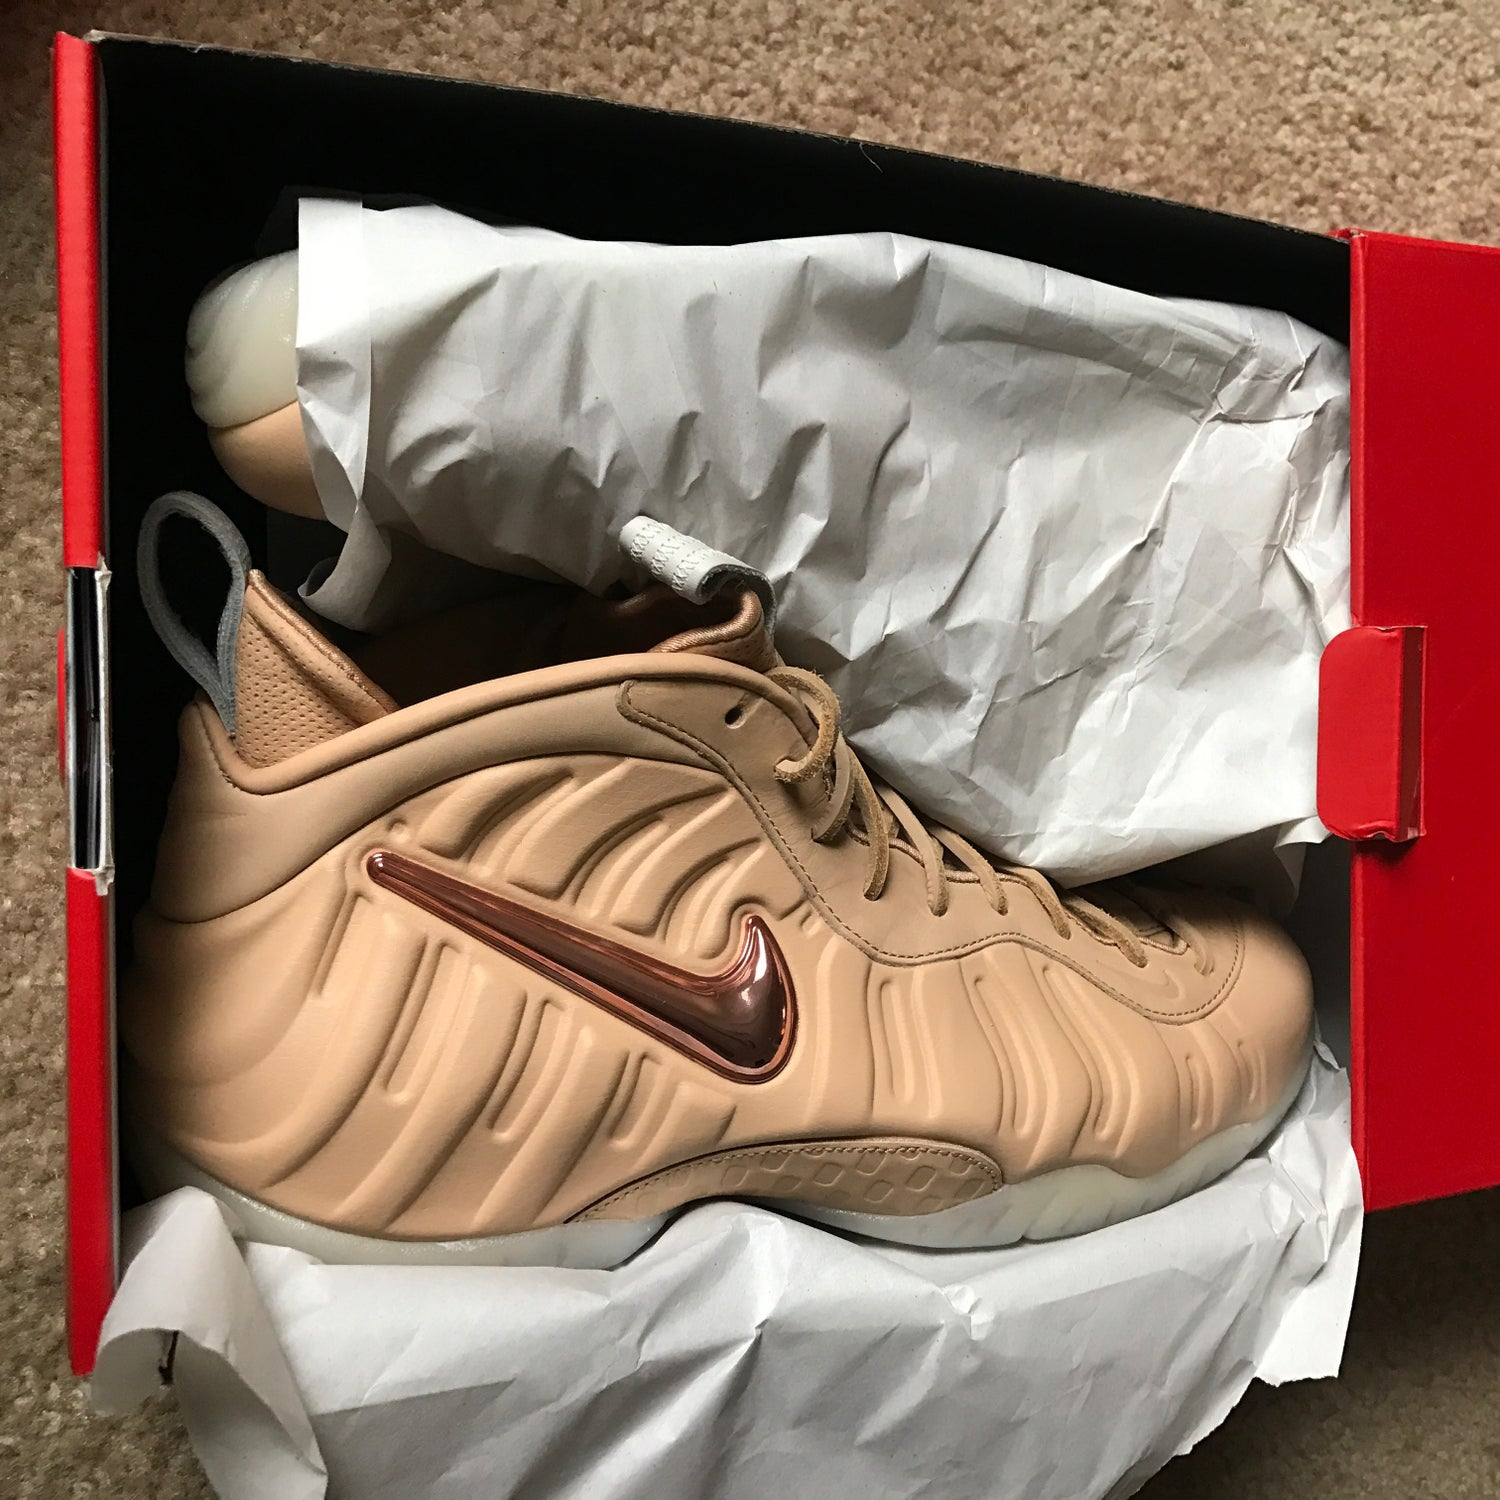 new products aa4d8 93022 Image of Nike Air Foamposite Pro Prm As Qs All Star siz 10